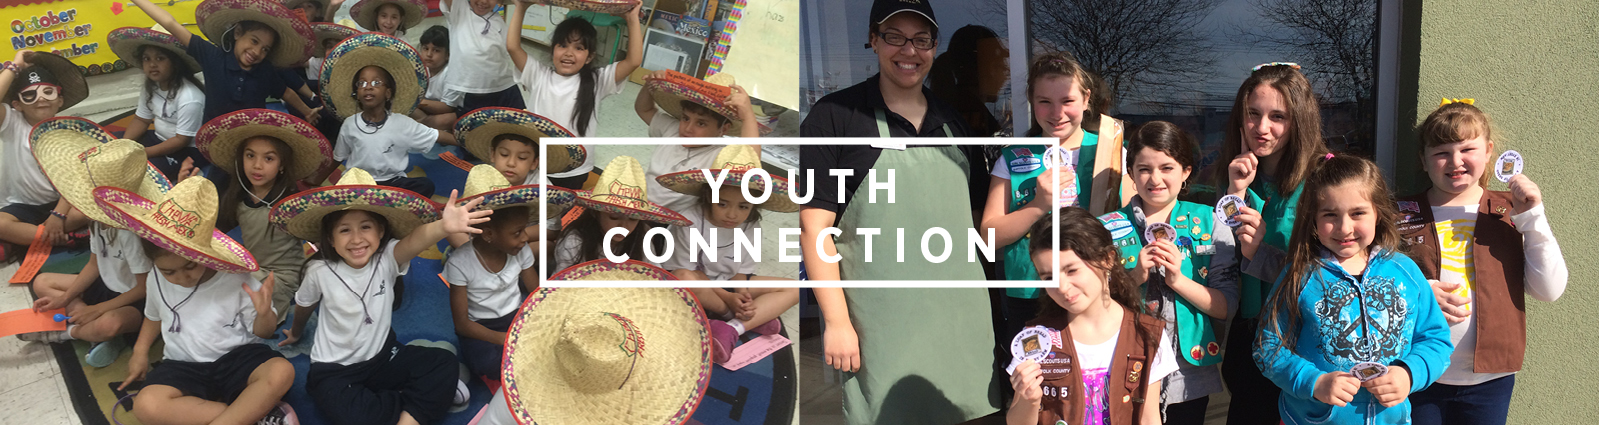 YouthConnection